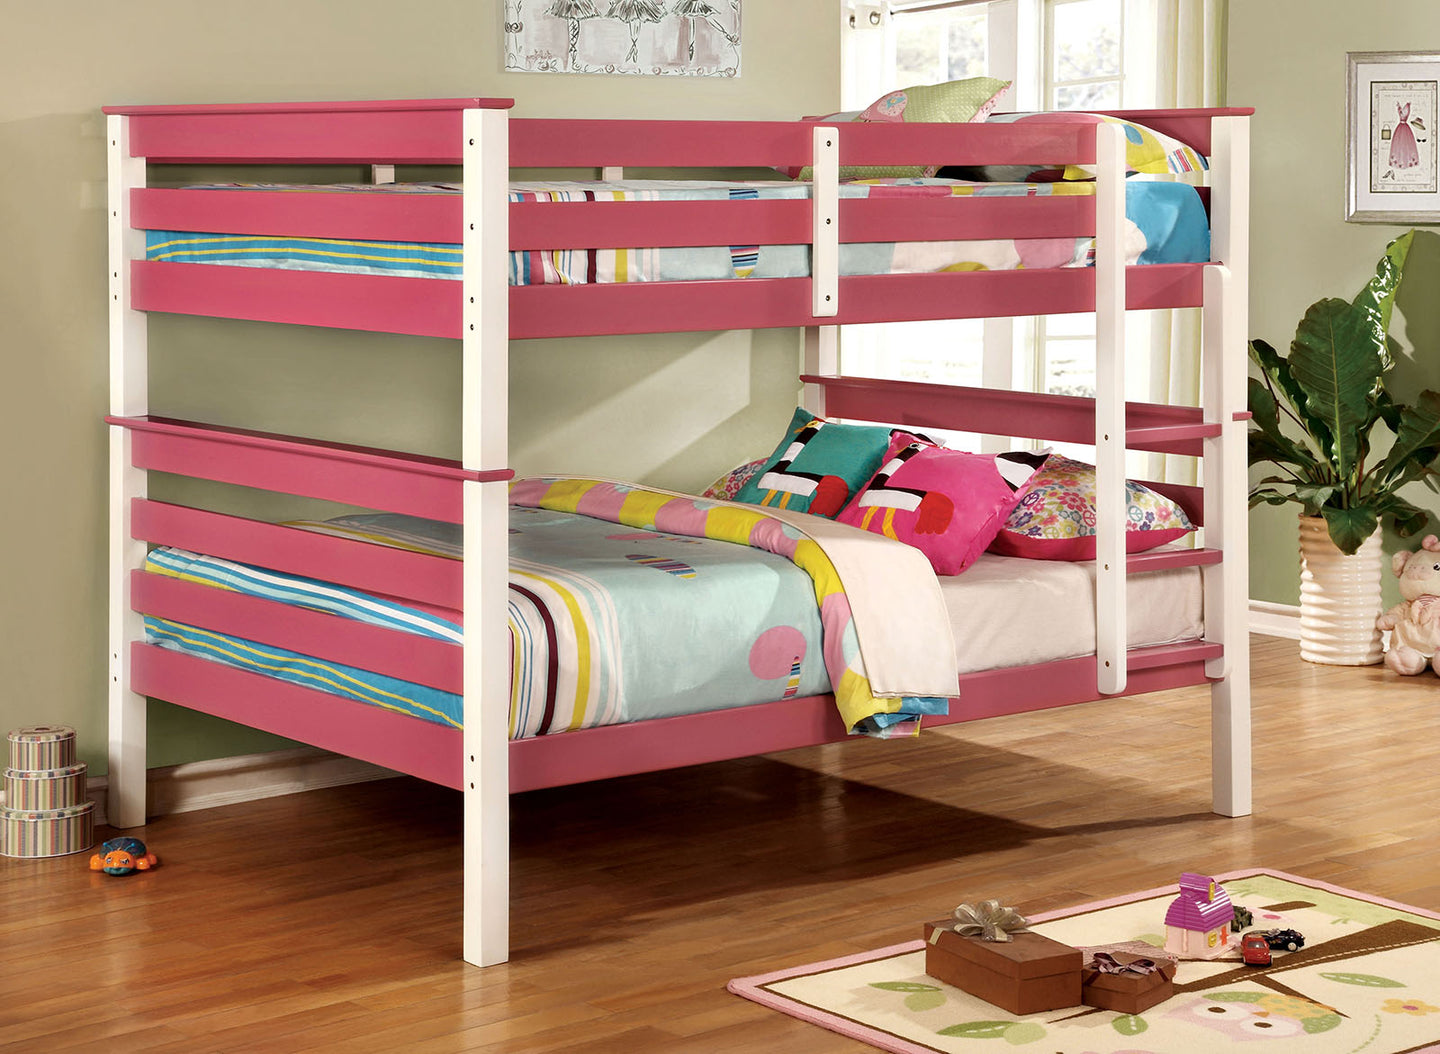 Lorren CM-BK620F-PK Transitional Pink White Full over Full Bunk Bed